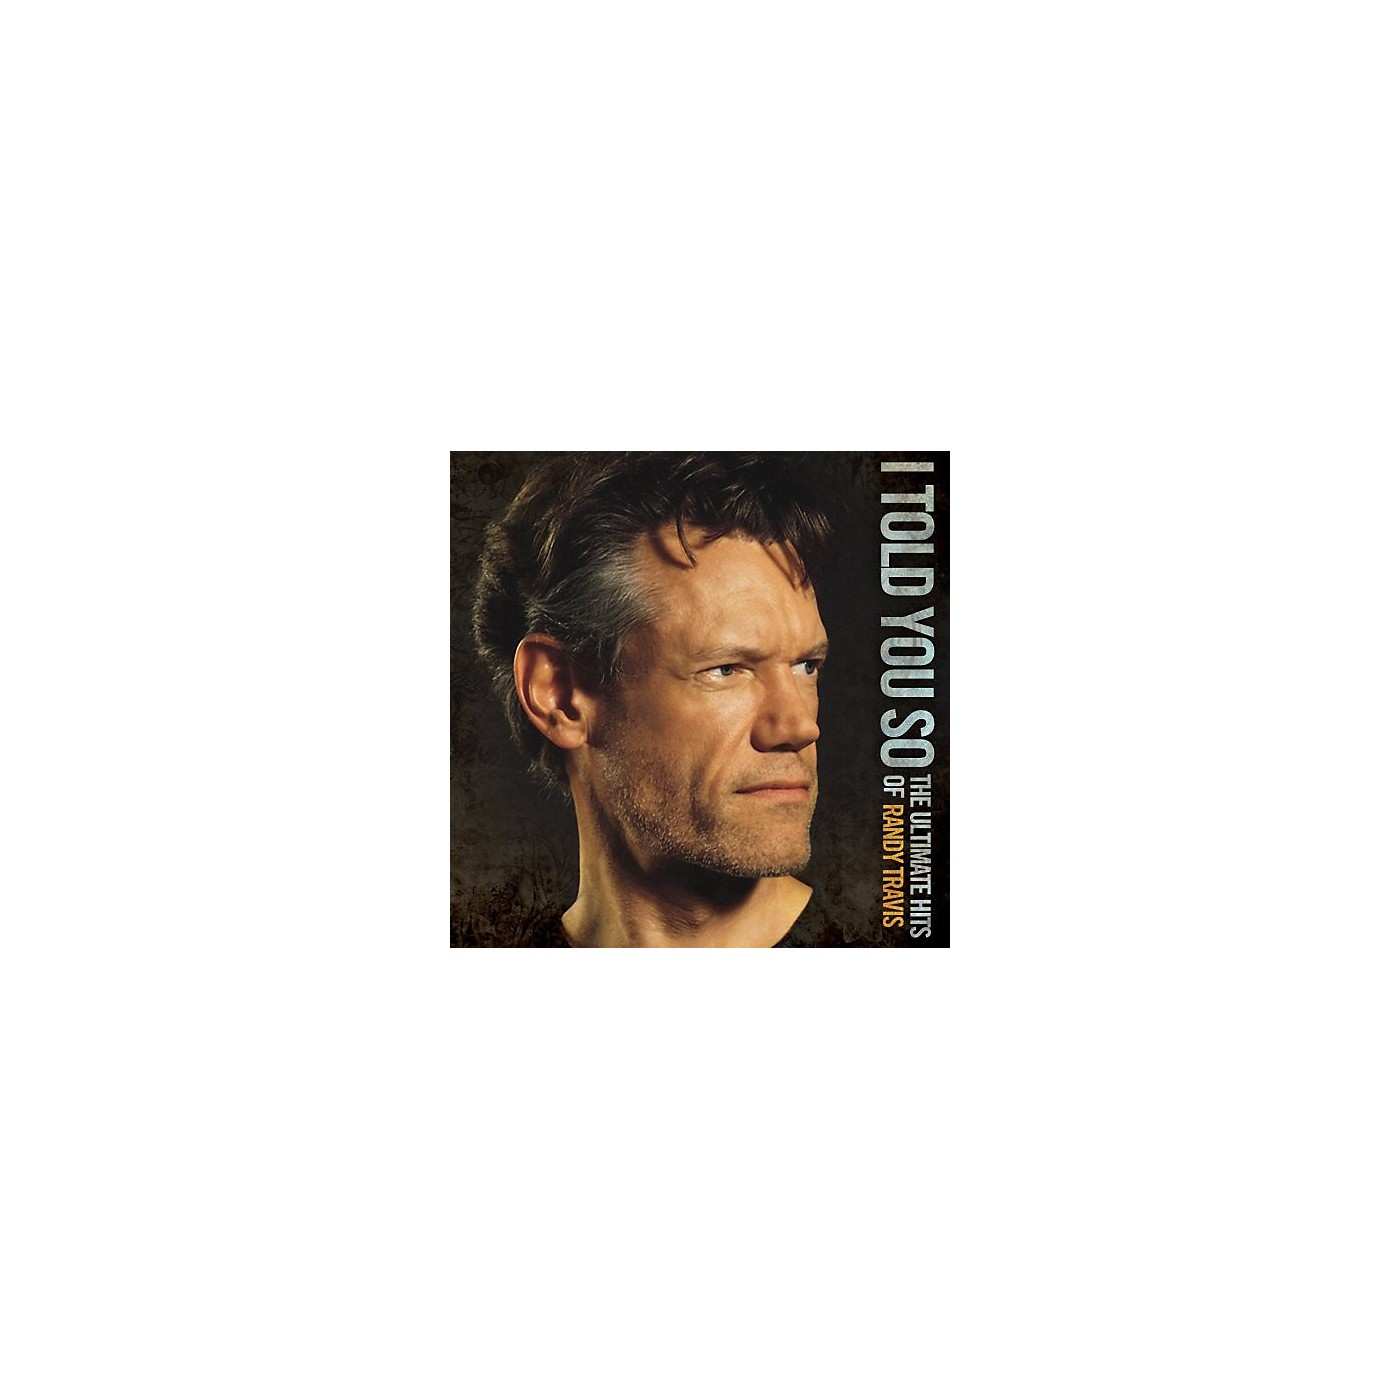 Alliance Randy Travis - I Told You So: The Ultimate Hits of Randy Travis (CD) thumbnail